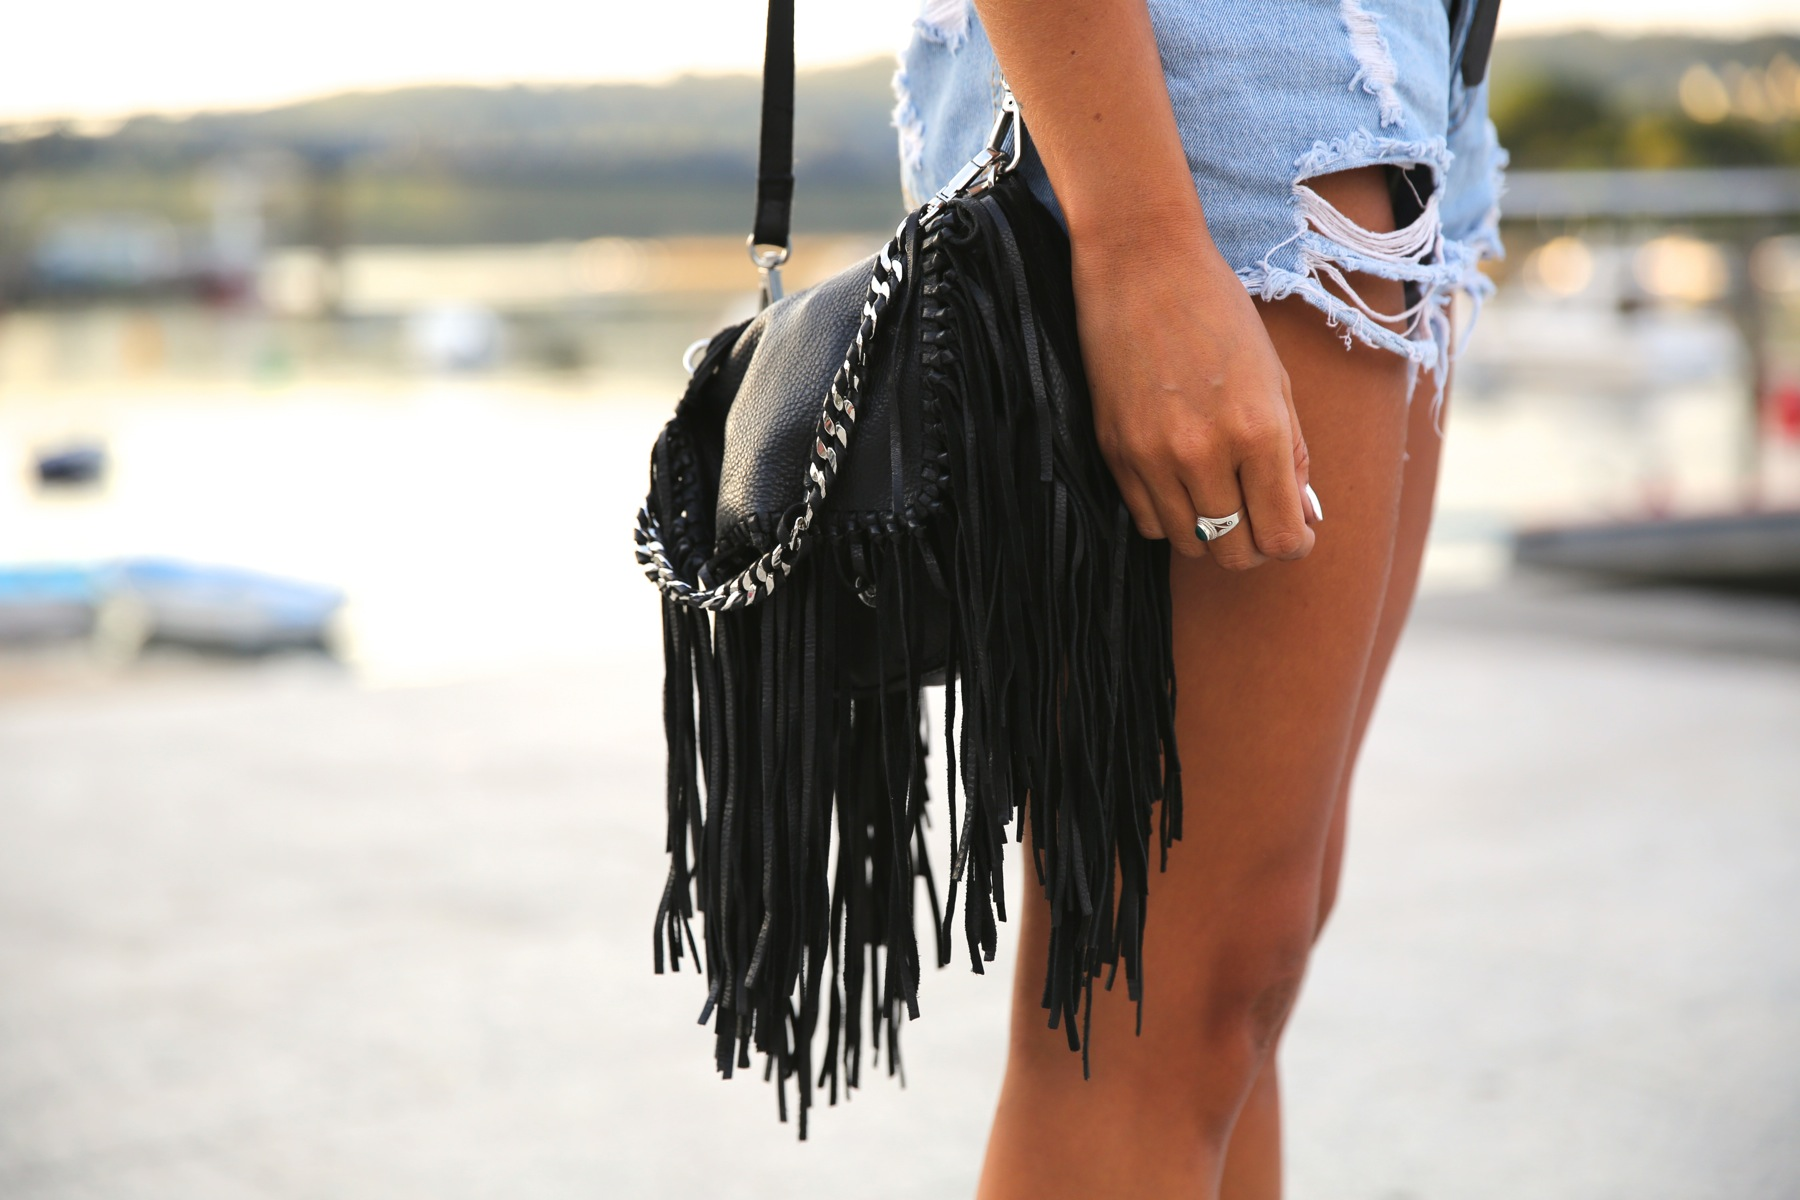 trendy_taste-look-outfit-street_style-ootd-blog-blogger-fashion_spain-moda_españa-denim_shorts-shorts_vaqueros-sandalias-sandals-verano-summer-leather_top-top_cuero-galicia-1